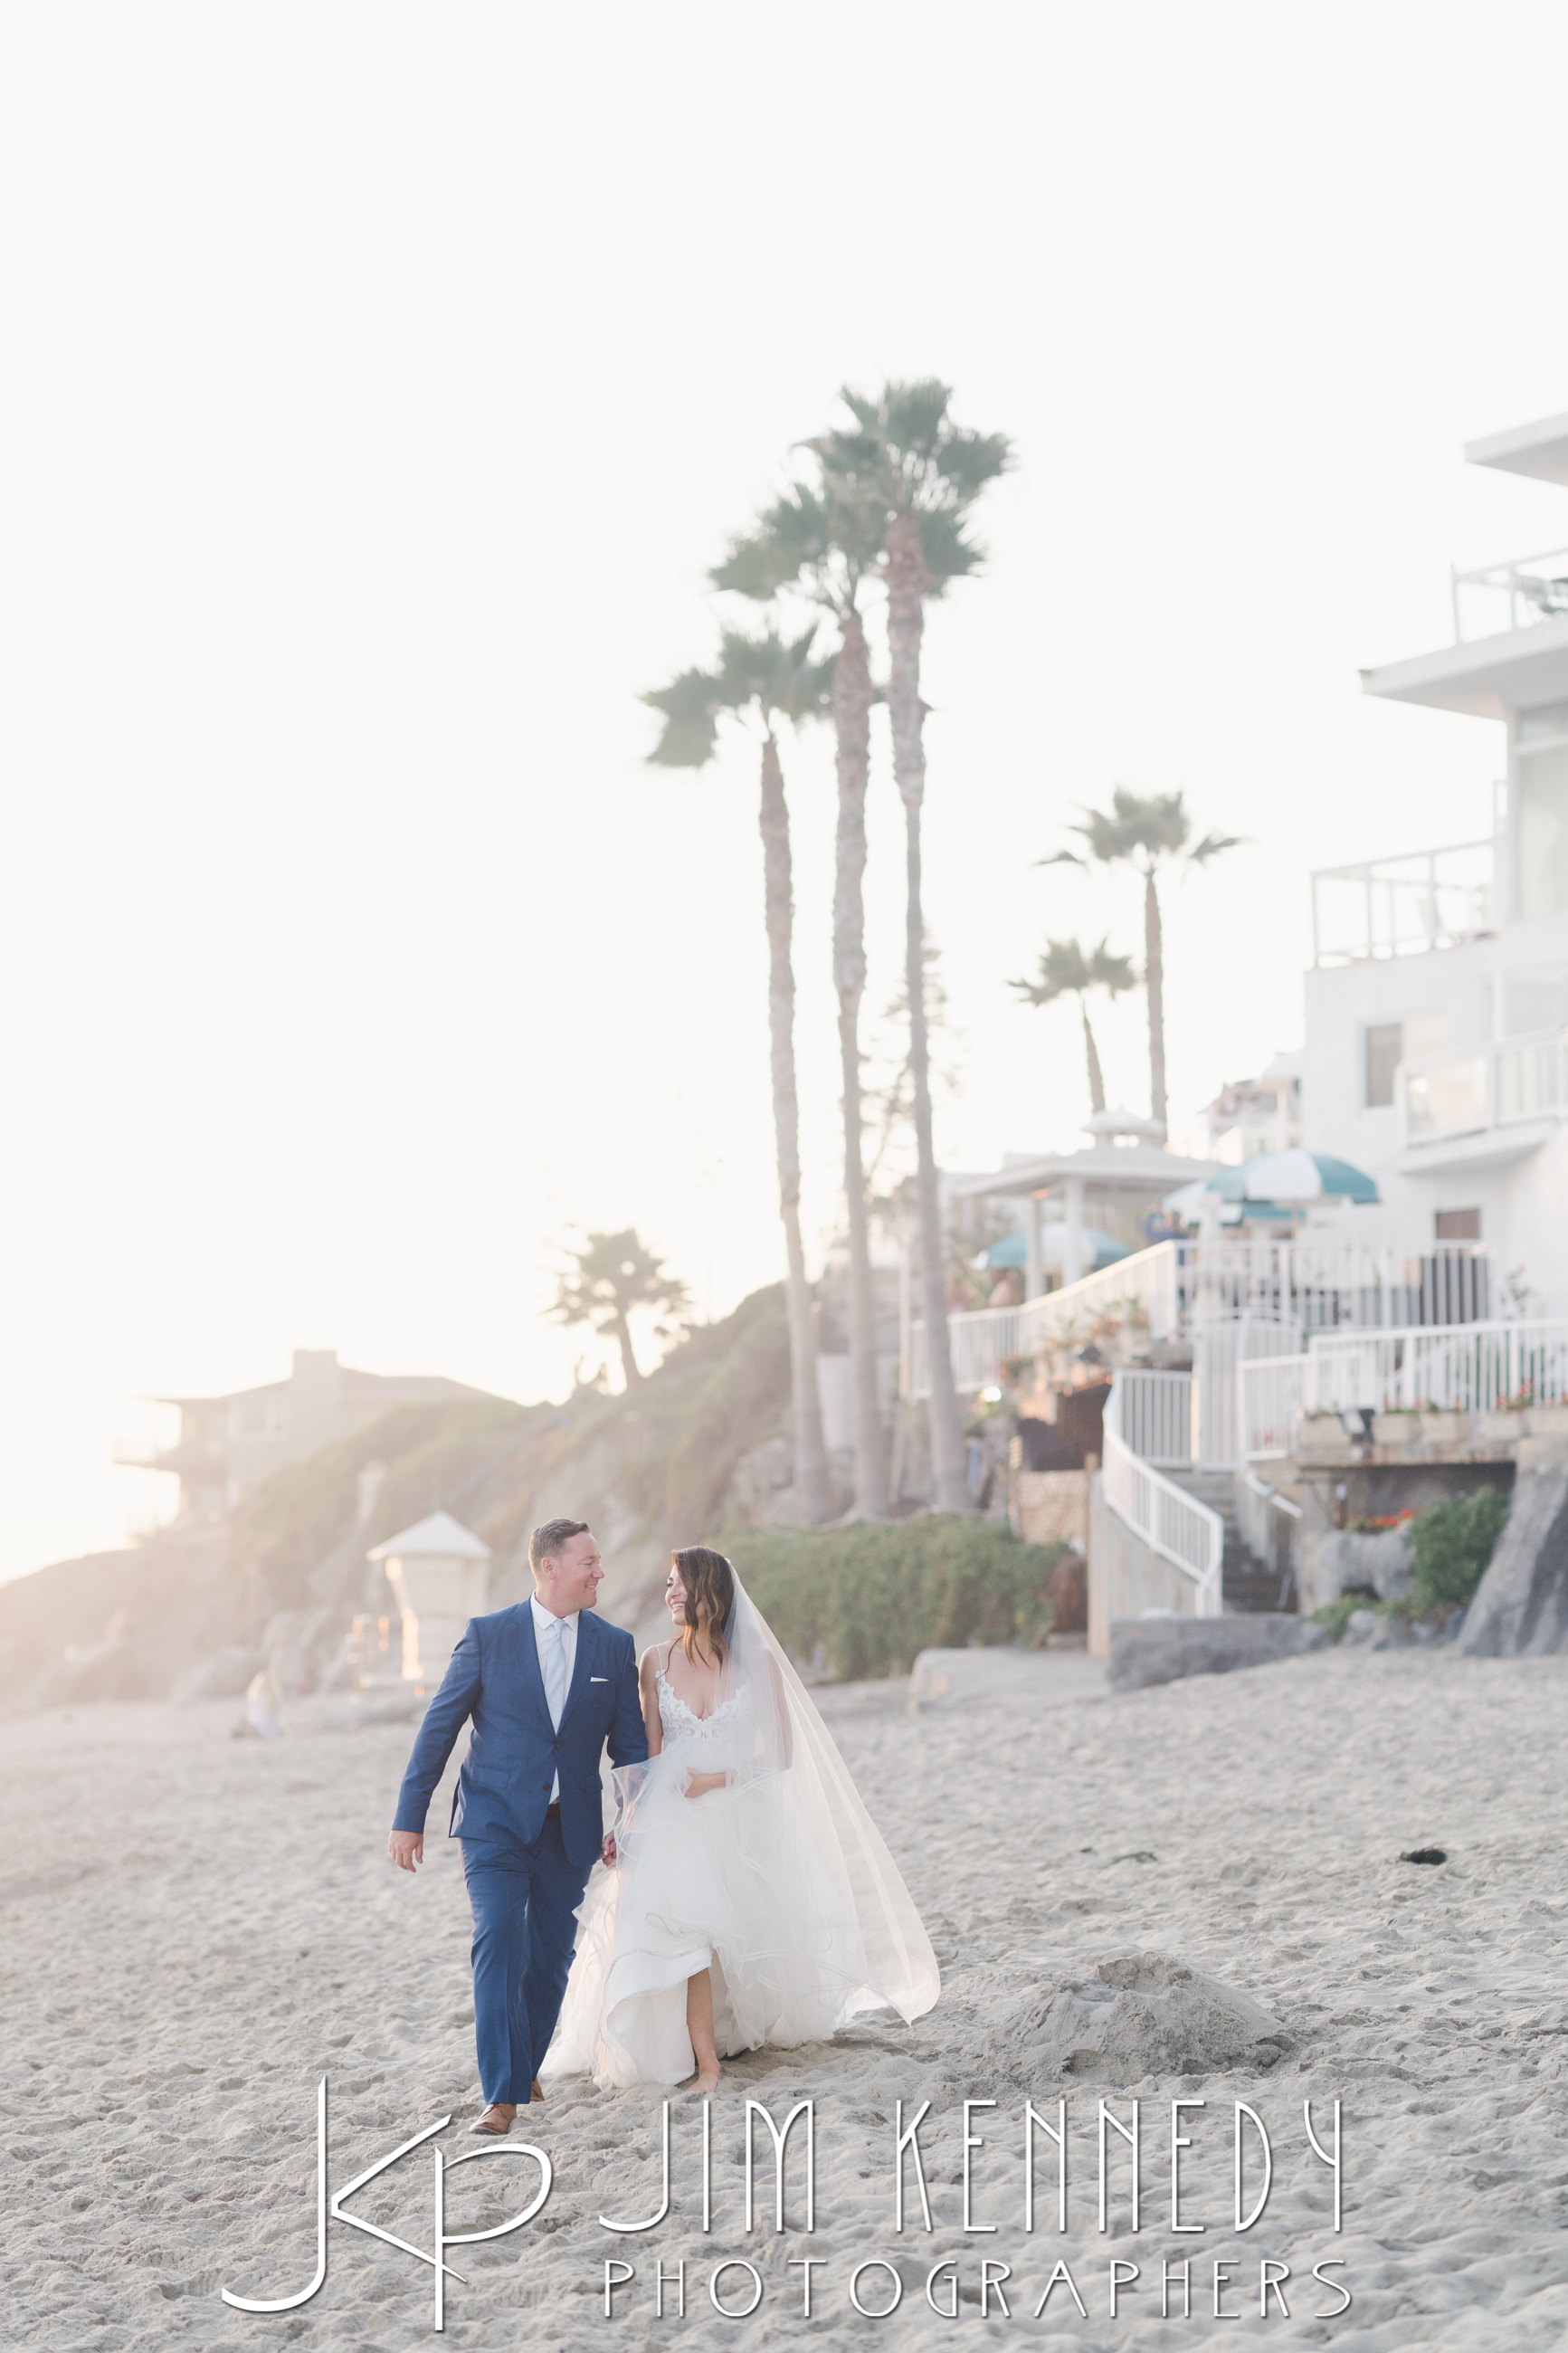 surf-and-sand-resort-wedding-erica-glenn_0204.JPG